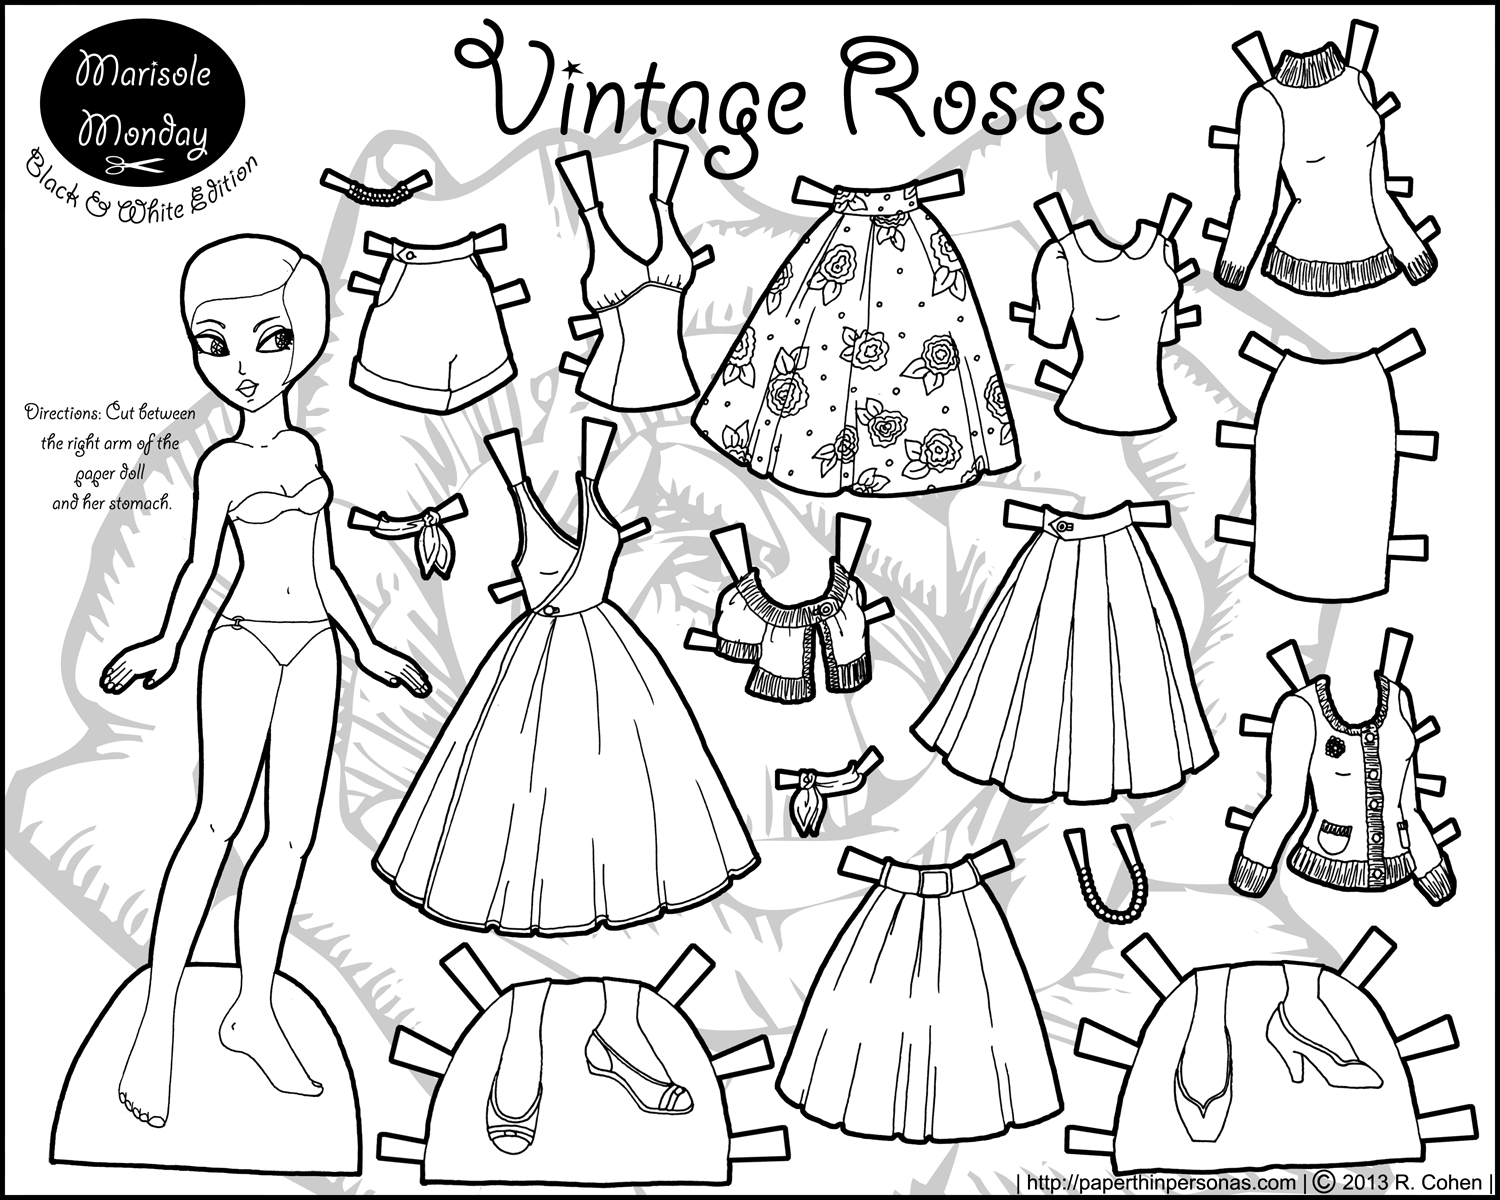 dress up paper dolls marisole monday vintage roses paper thin personas dress dolls paper up